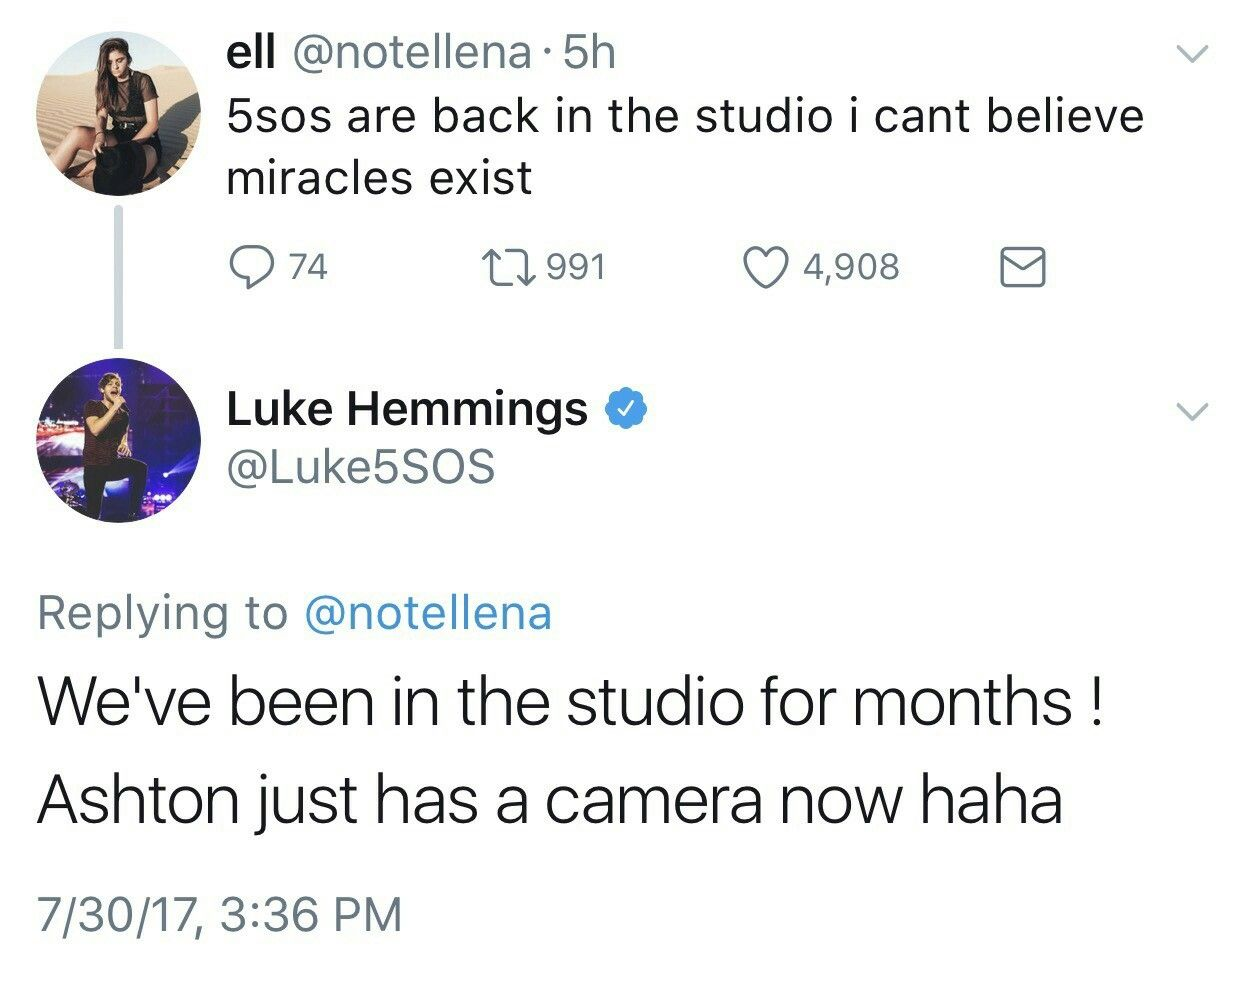 Well Luke, tell ash to use that fancy camera of his to take some pictures of himself. I miss him. :(